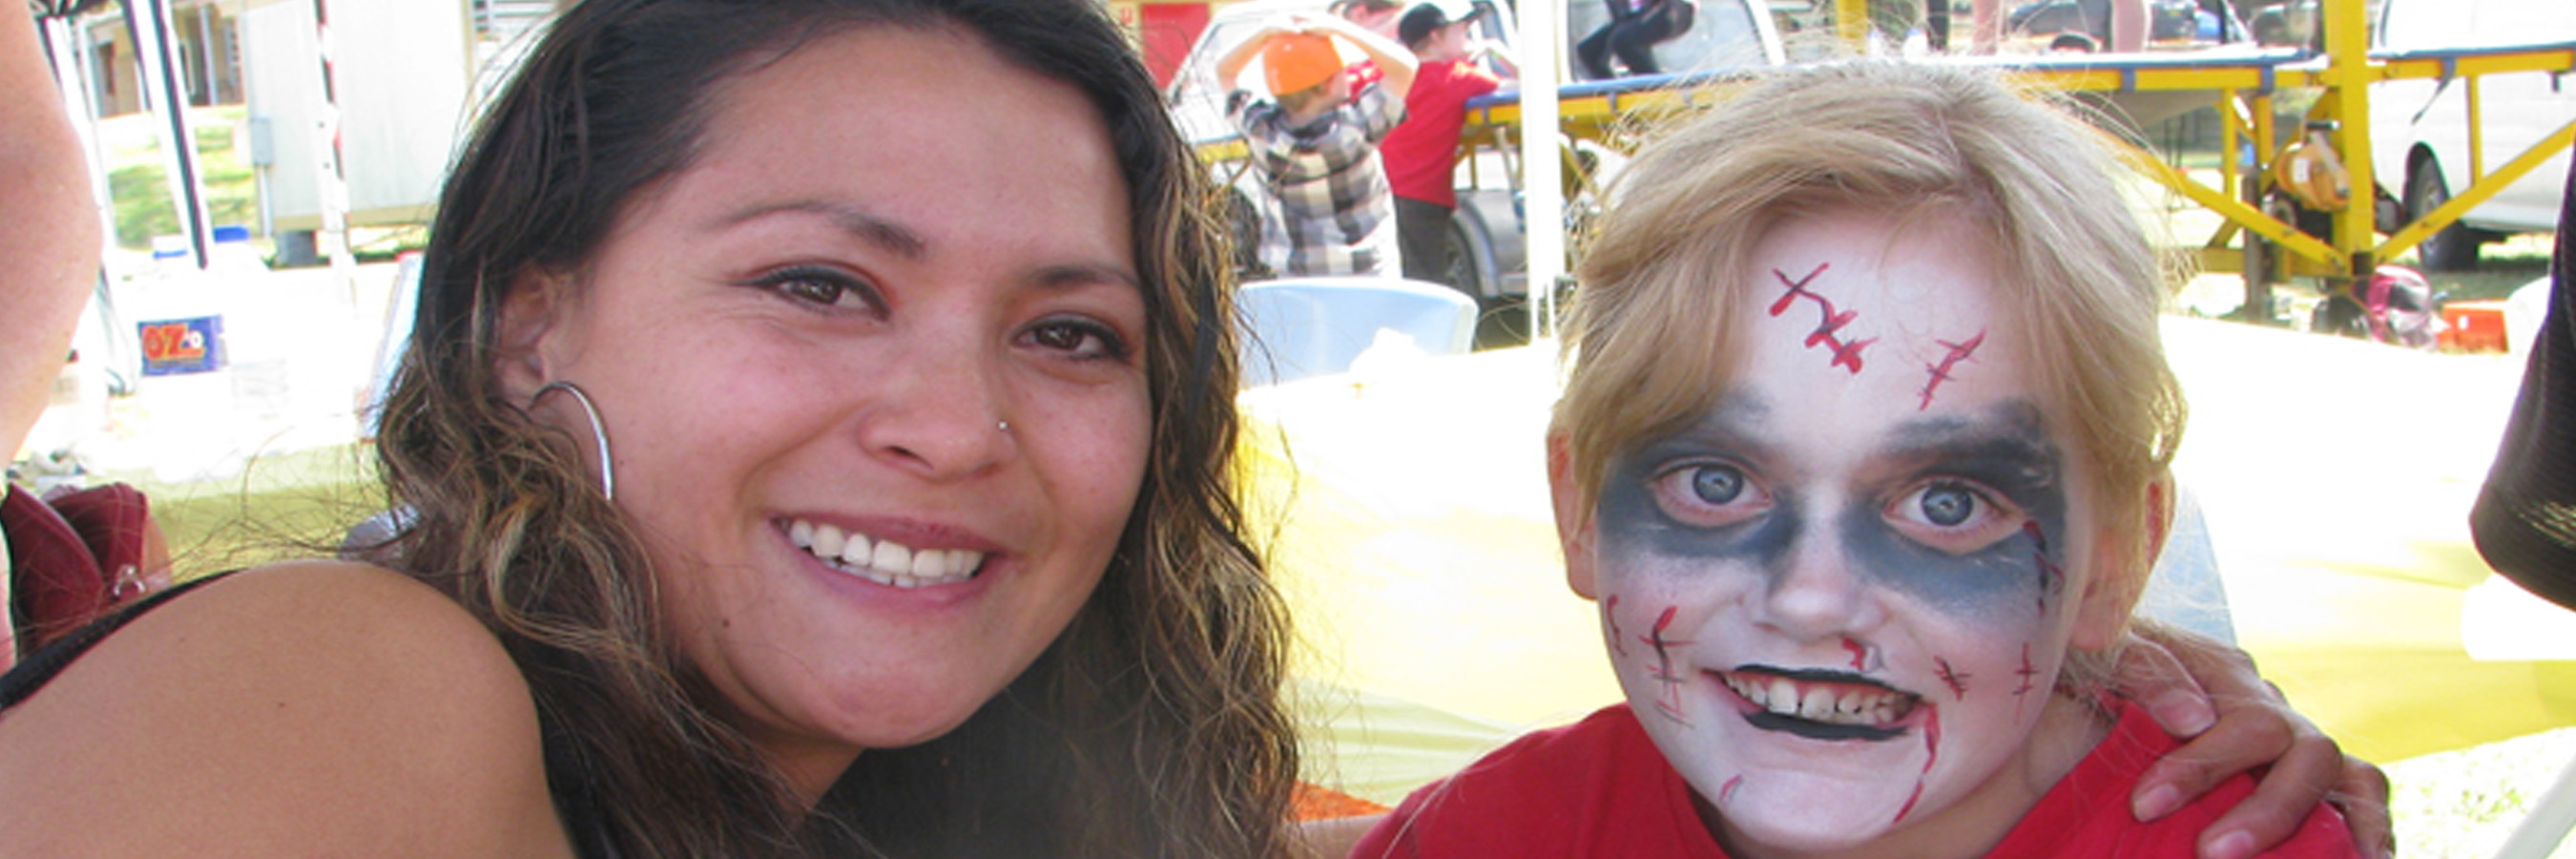 Face Painting 8